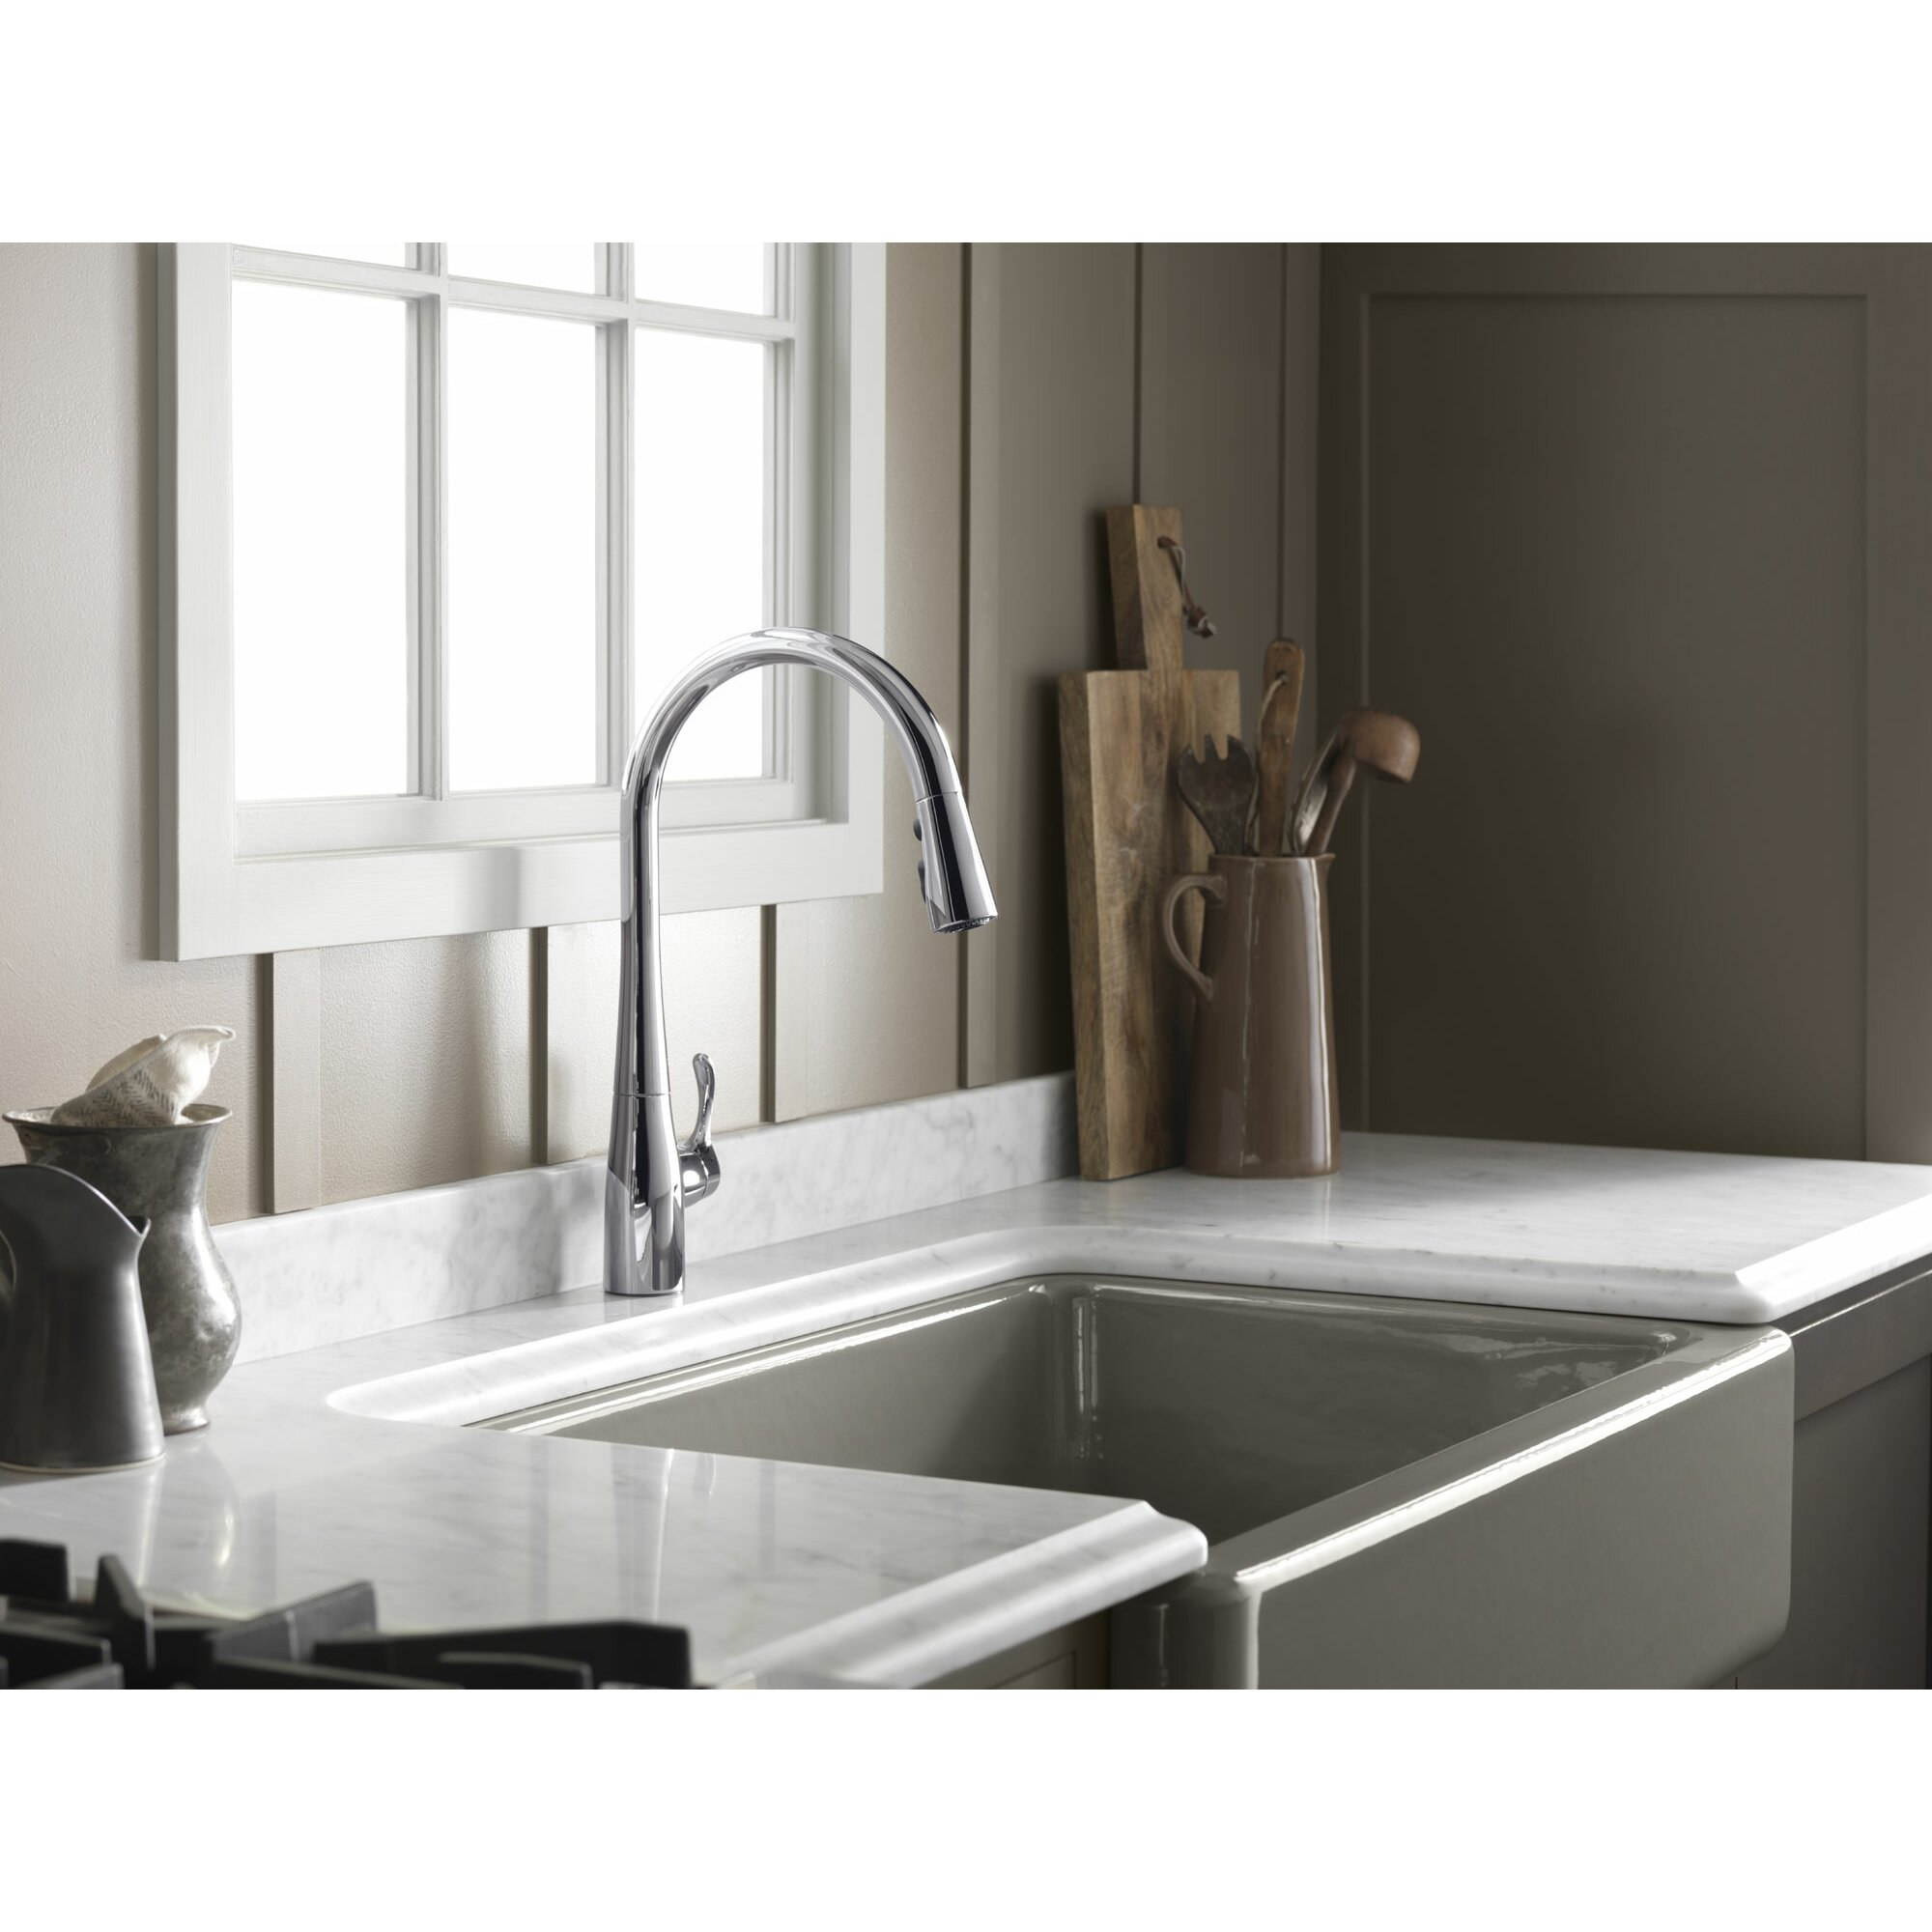 High end kitchen sink faucets - Simplice Kitchen Sink Faucet With 16 5 8 Pull Down Spout